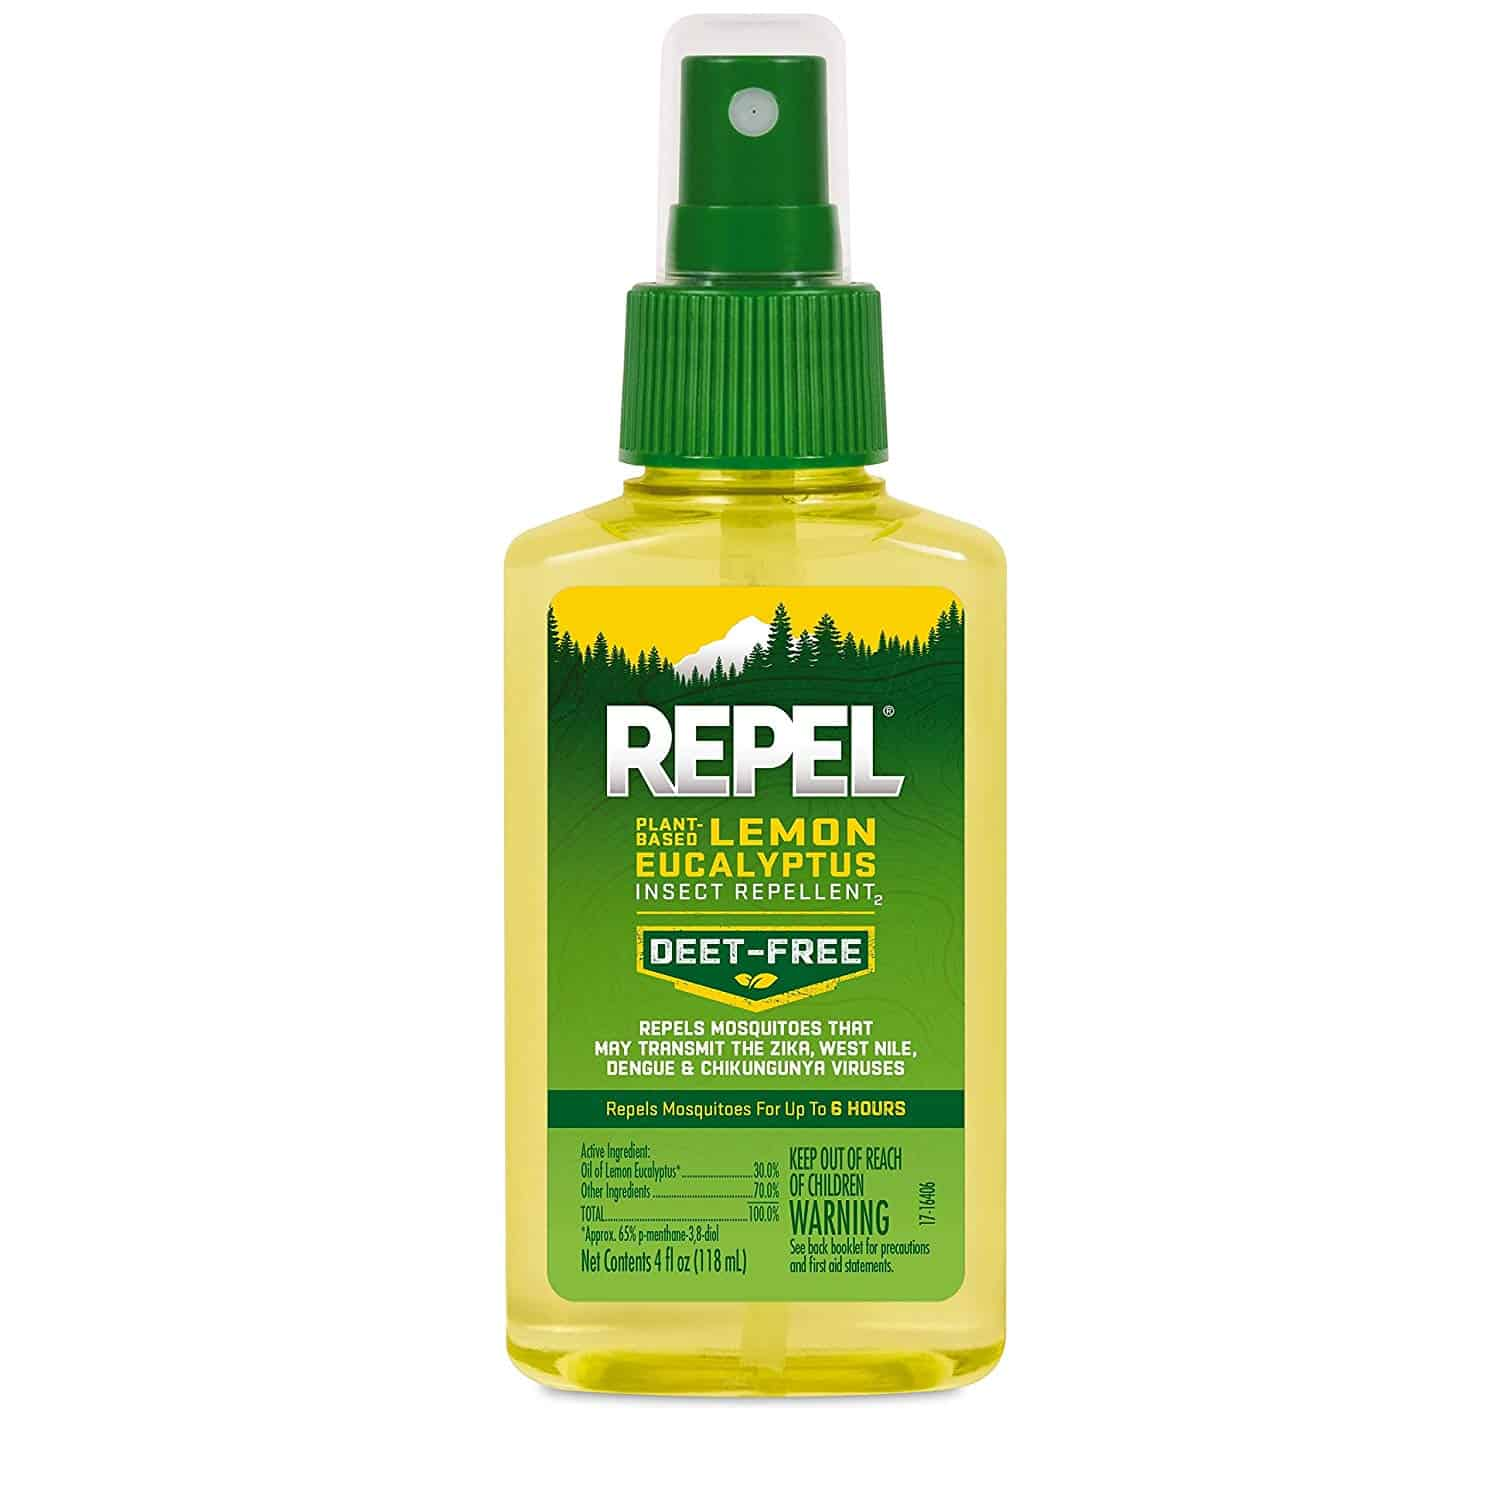 REPEL Plant-Based Lemon Eucalyptus Insect Repellent Review